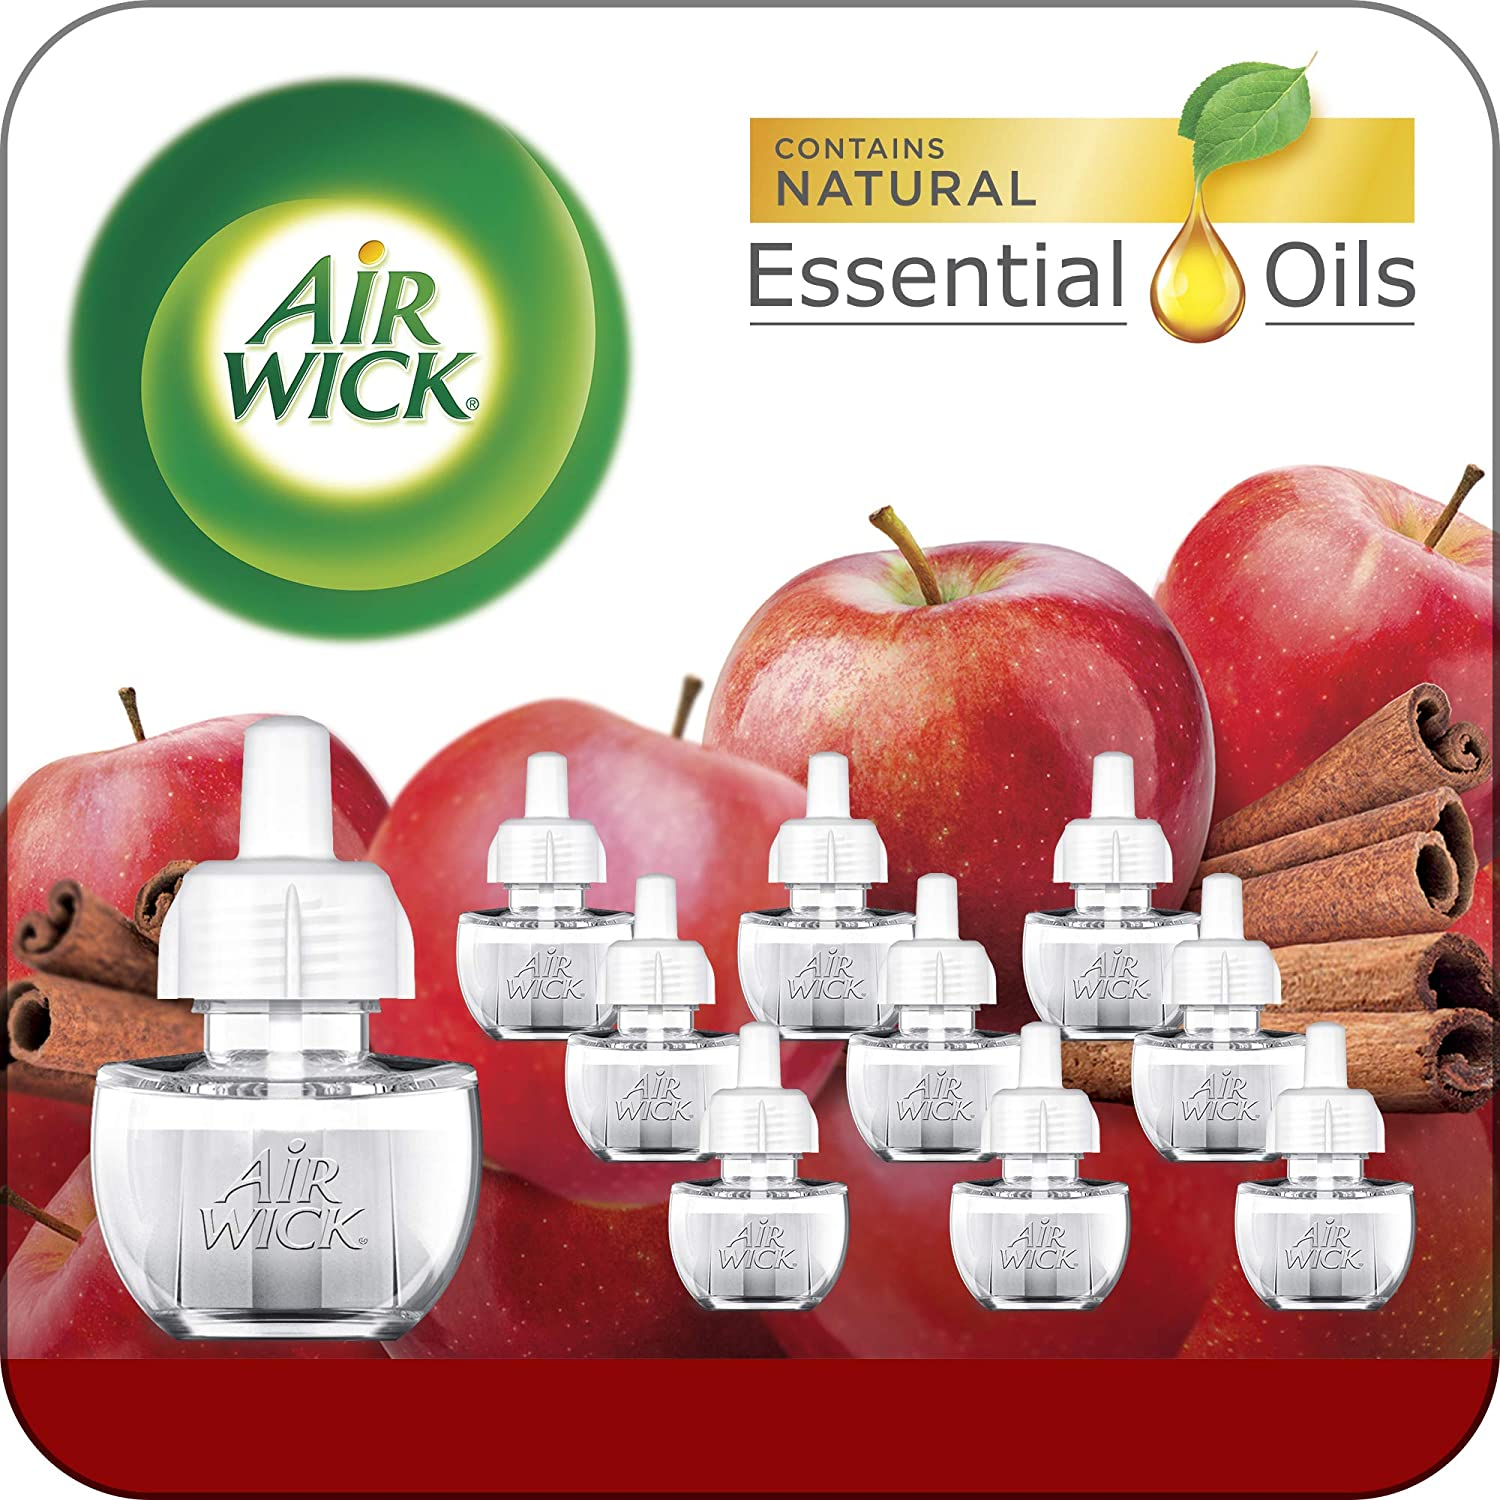 Air Wick Plug in Scented Oil 10 Refills, Apple Cinnamon, Holiday Scent, Holiday Spray, Eco Friendly, Essential Oils, Air Freshener